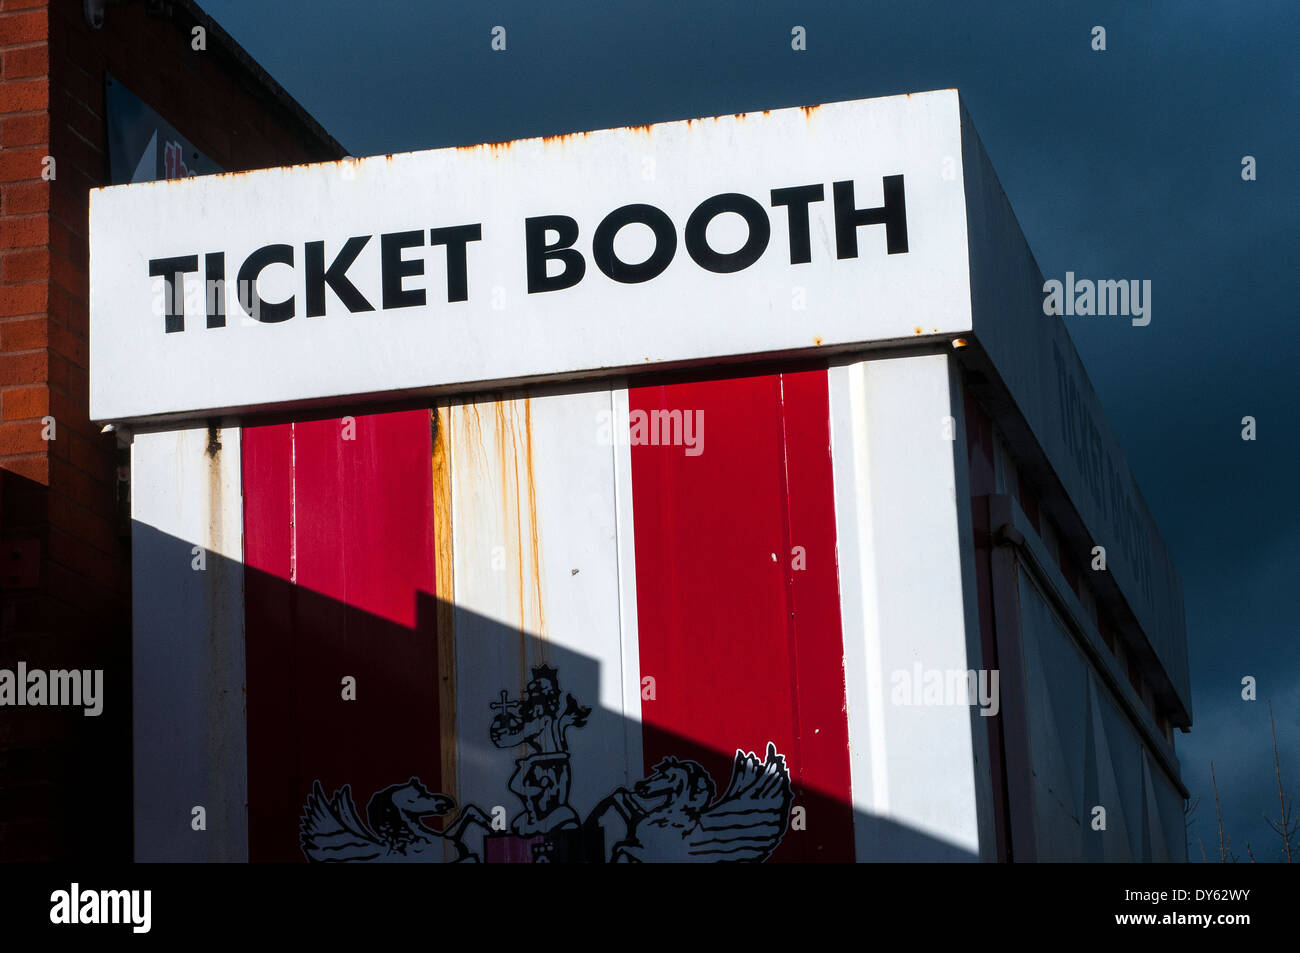 ticket booth at exeter city football club, event, booth, game, park, music, circus, red, fair, pass, play, outdoor, entry, fun, - Stock Image